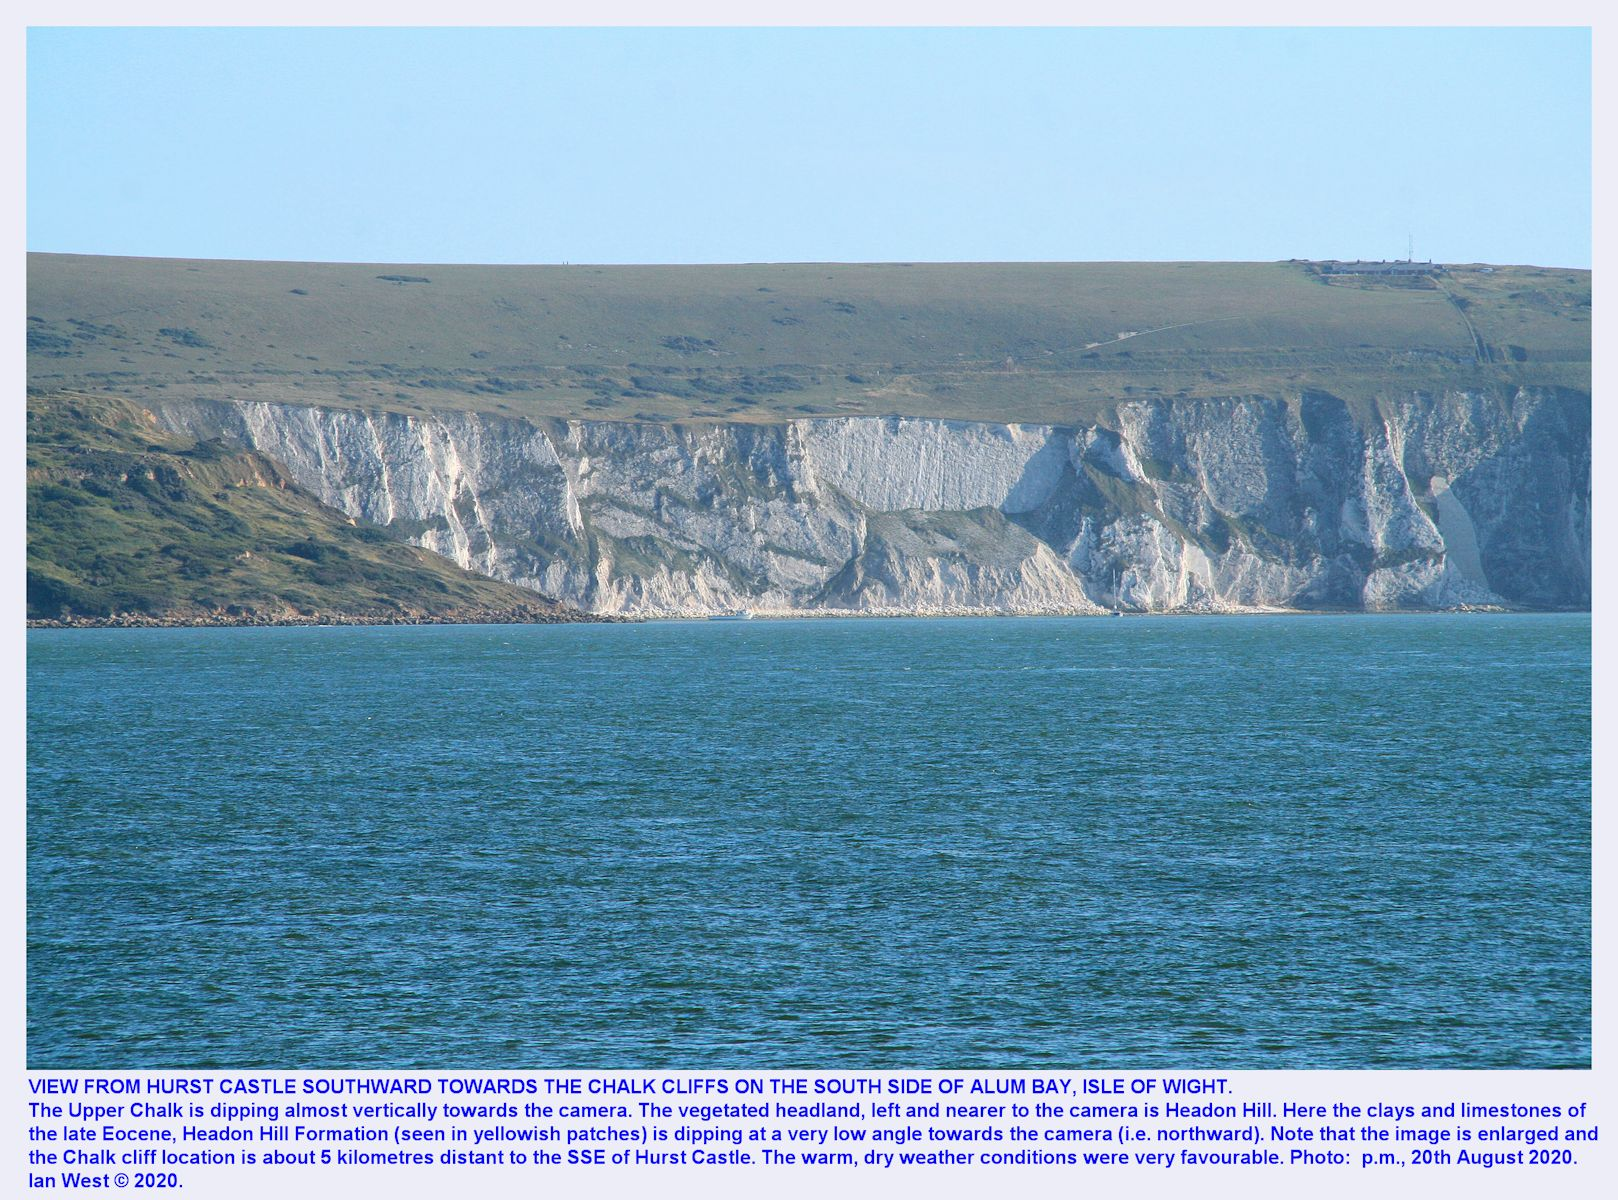 Distant view of the Chalk cliffs at Alum Bay, as seen, enlarged, from the top of Hurst Castle, 20th August 2020